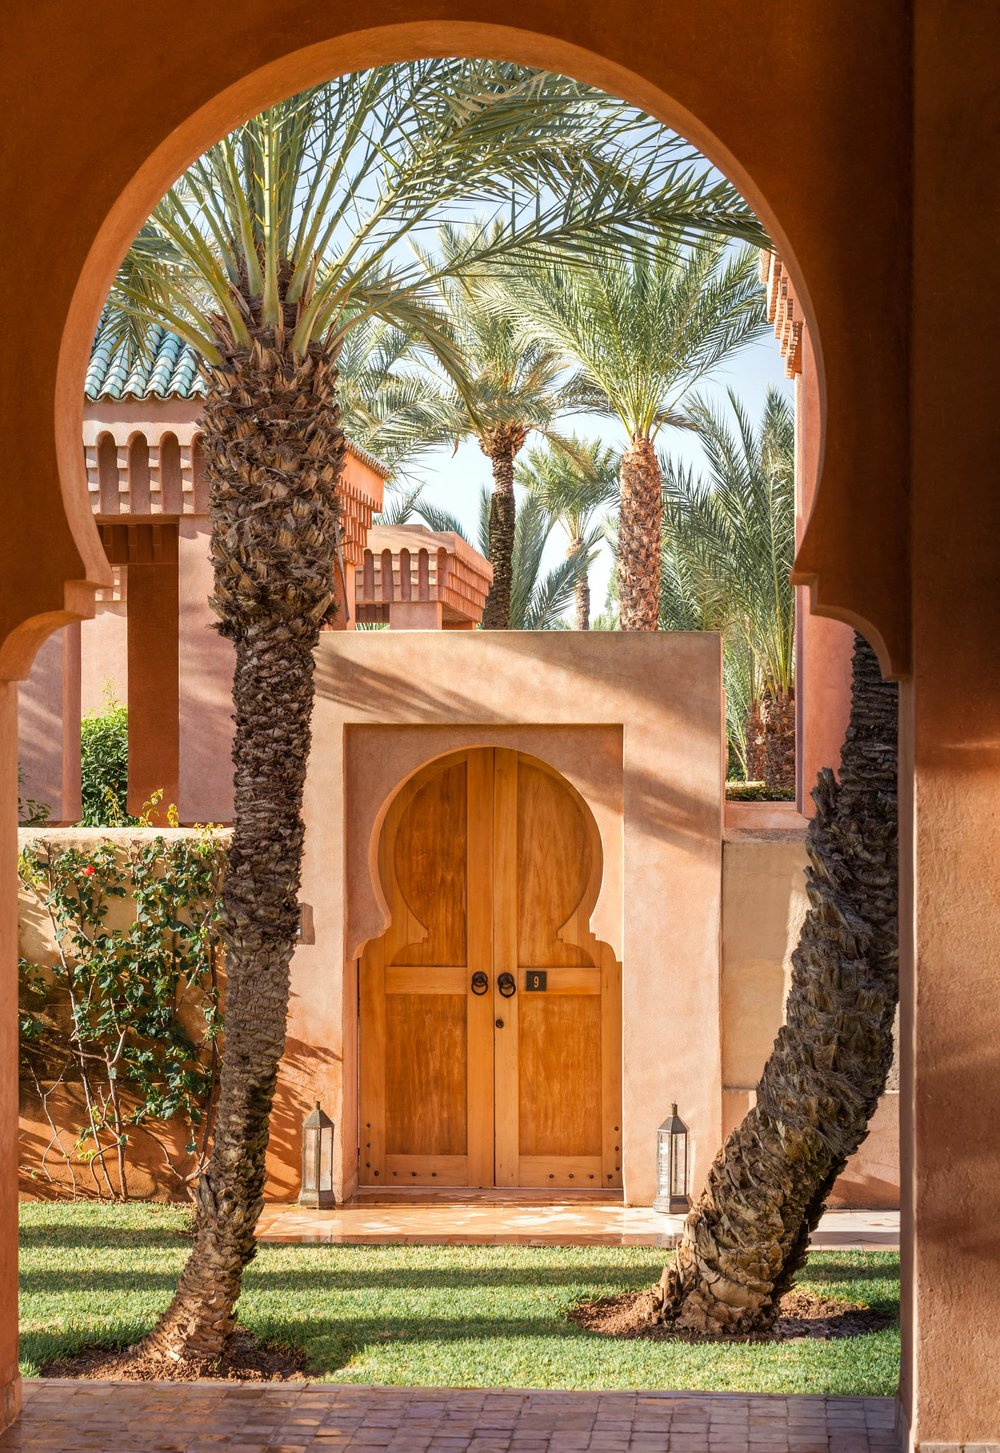 The rose pink walls of Amanjena glow in the sunlight, echoing those of old Marrakech.